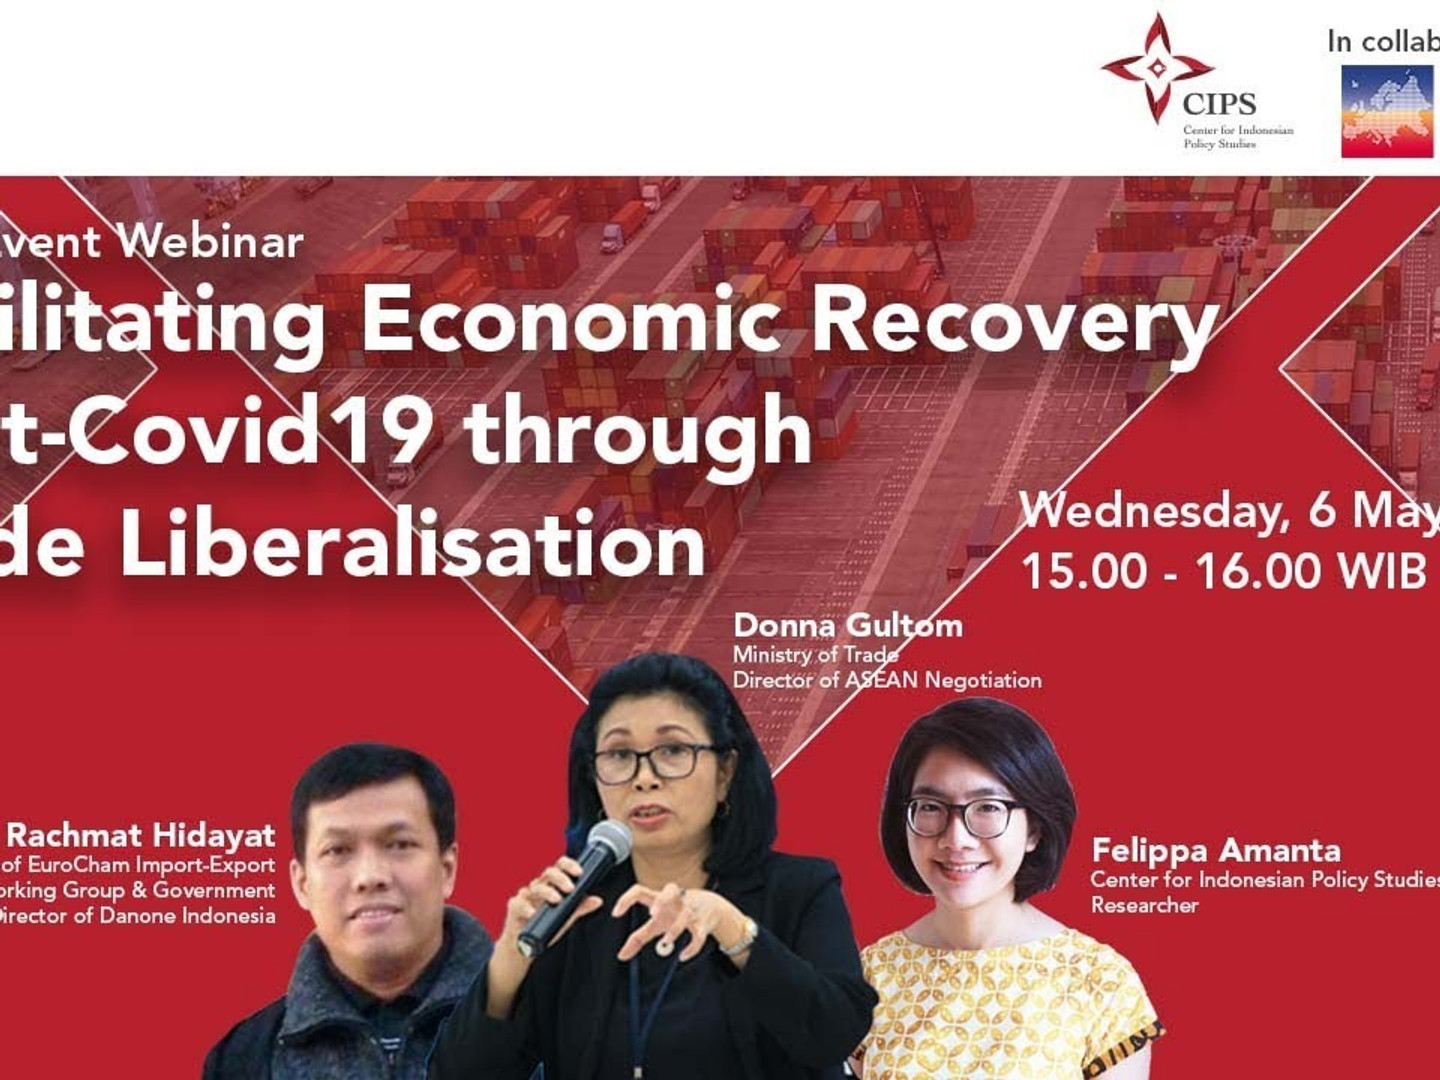 Webinar on Facilitating Economic Recovery Post-Covid19 through Trade Liberalisation